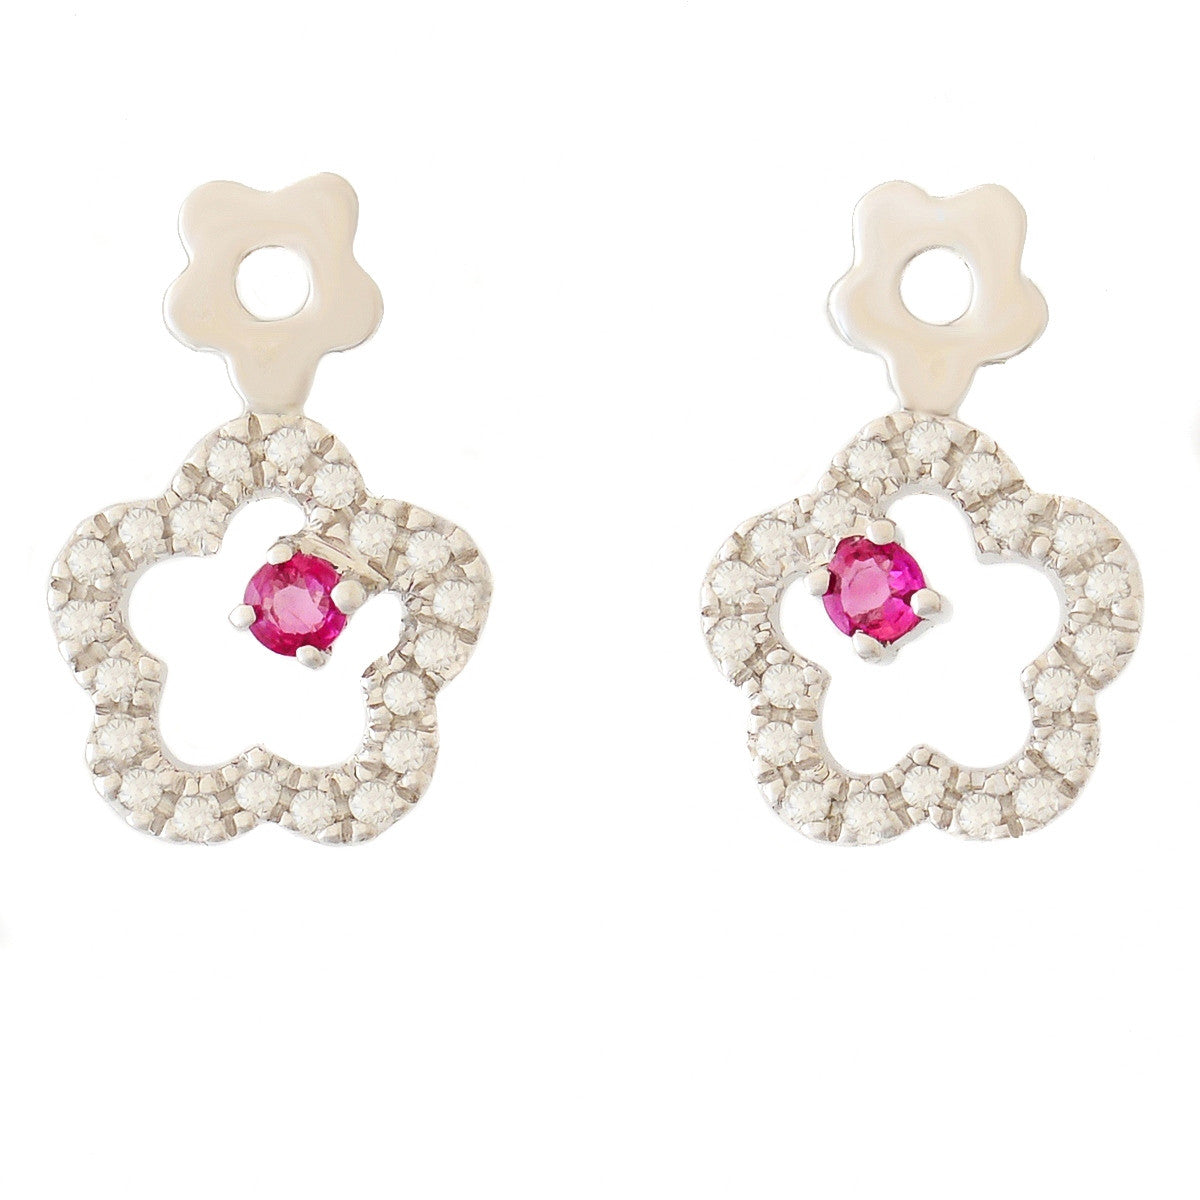 9K SOLID WHITE GOLD FLORAL INSPIRED NATURAL RUBY EARRINGS WITH 40 DIAMONDS.